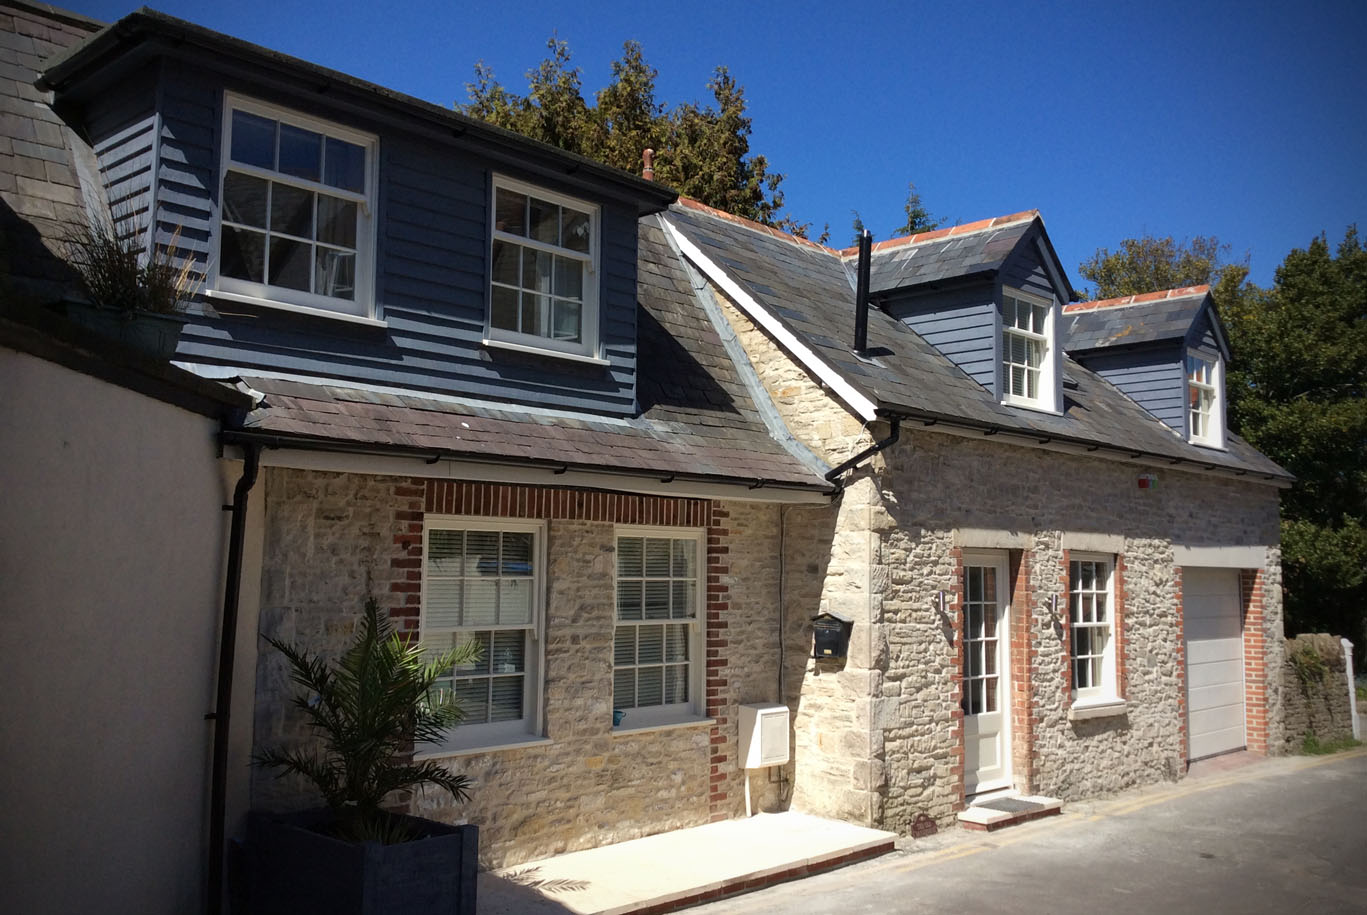 THE OLD BAKE HOUSE, SWANAGE